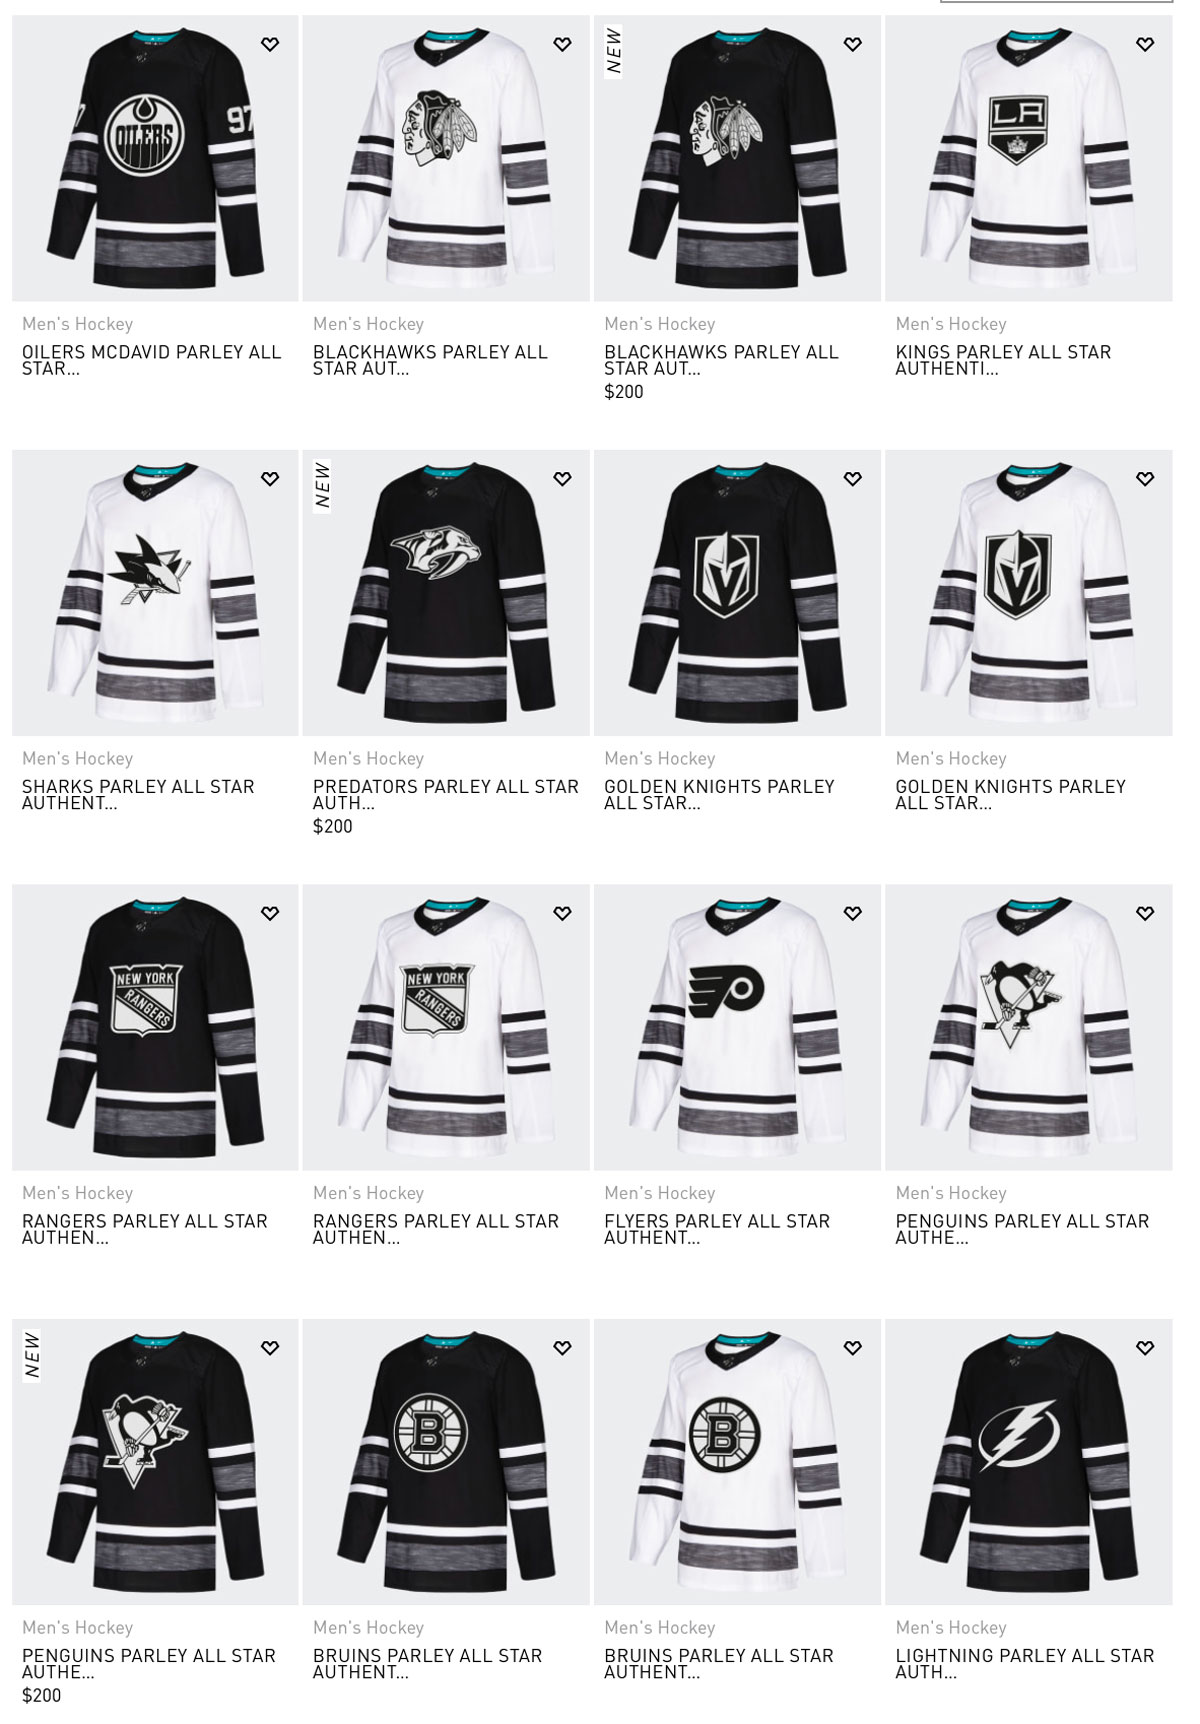 9c78cd9beca The Adidas jerseys run for $200 a piece while a normal-fabric Fanatics  jersey will be $140.